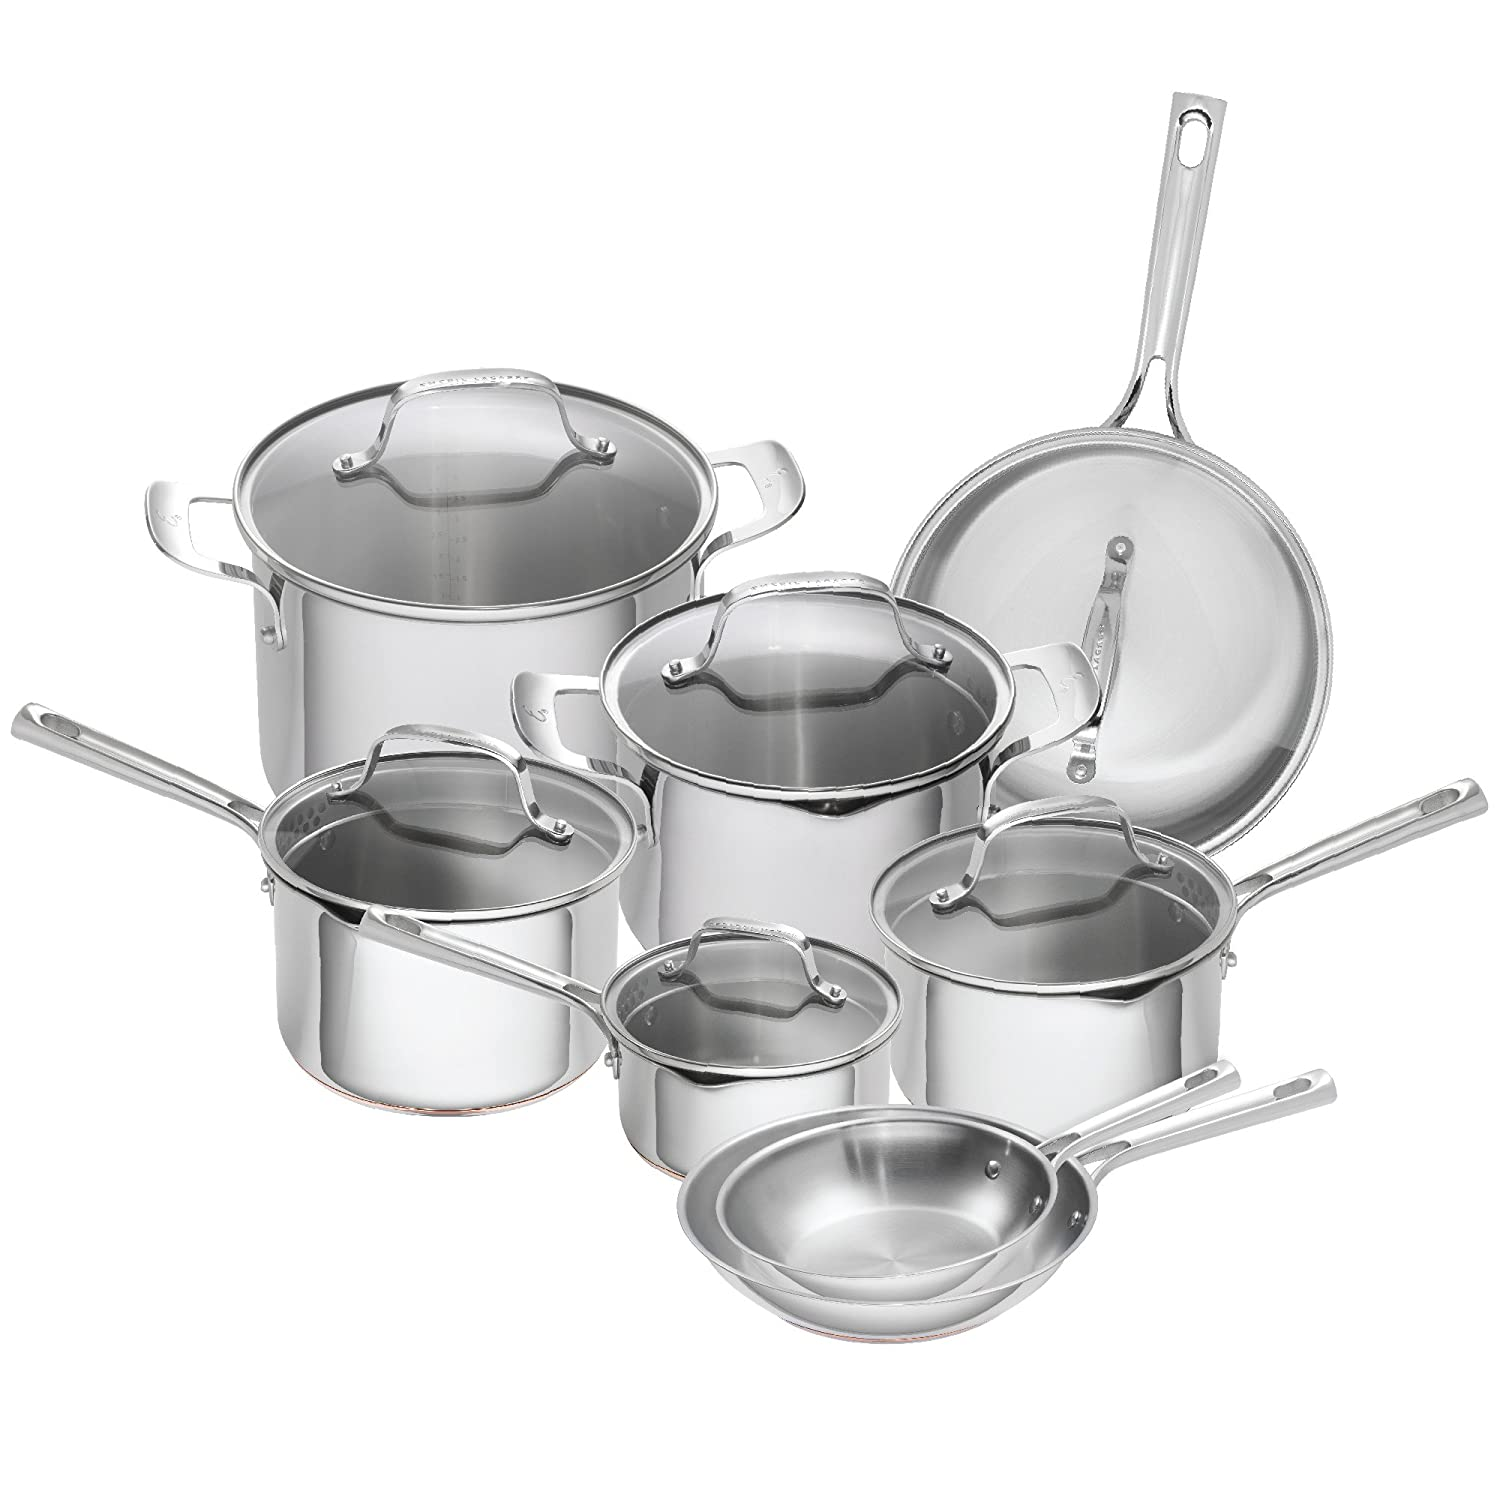 Amazon.com: Emeril Lagasse 14 Piece Stainless Steel Copper Core ...